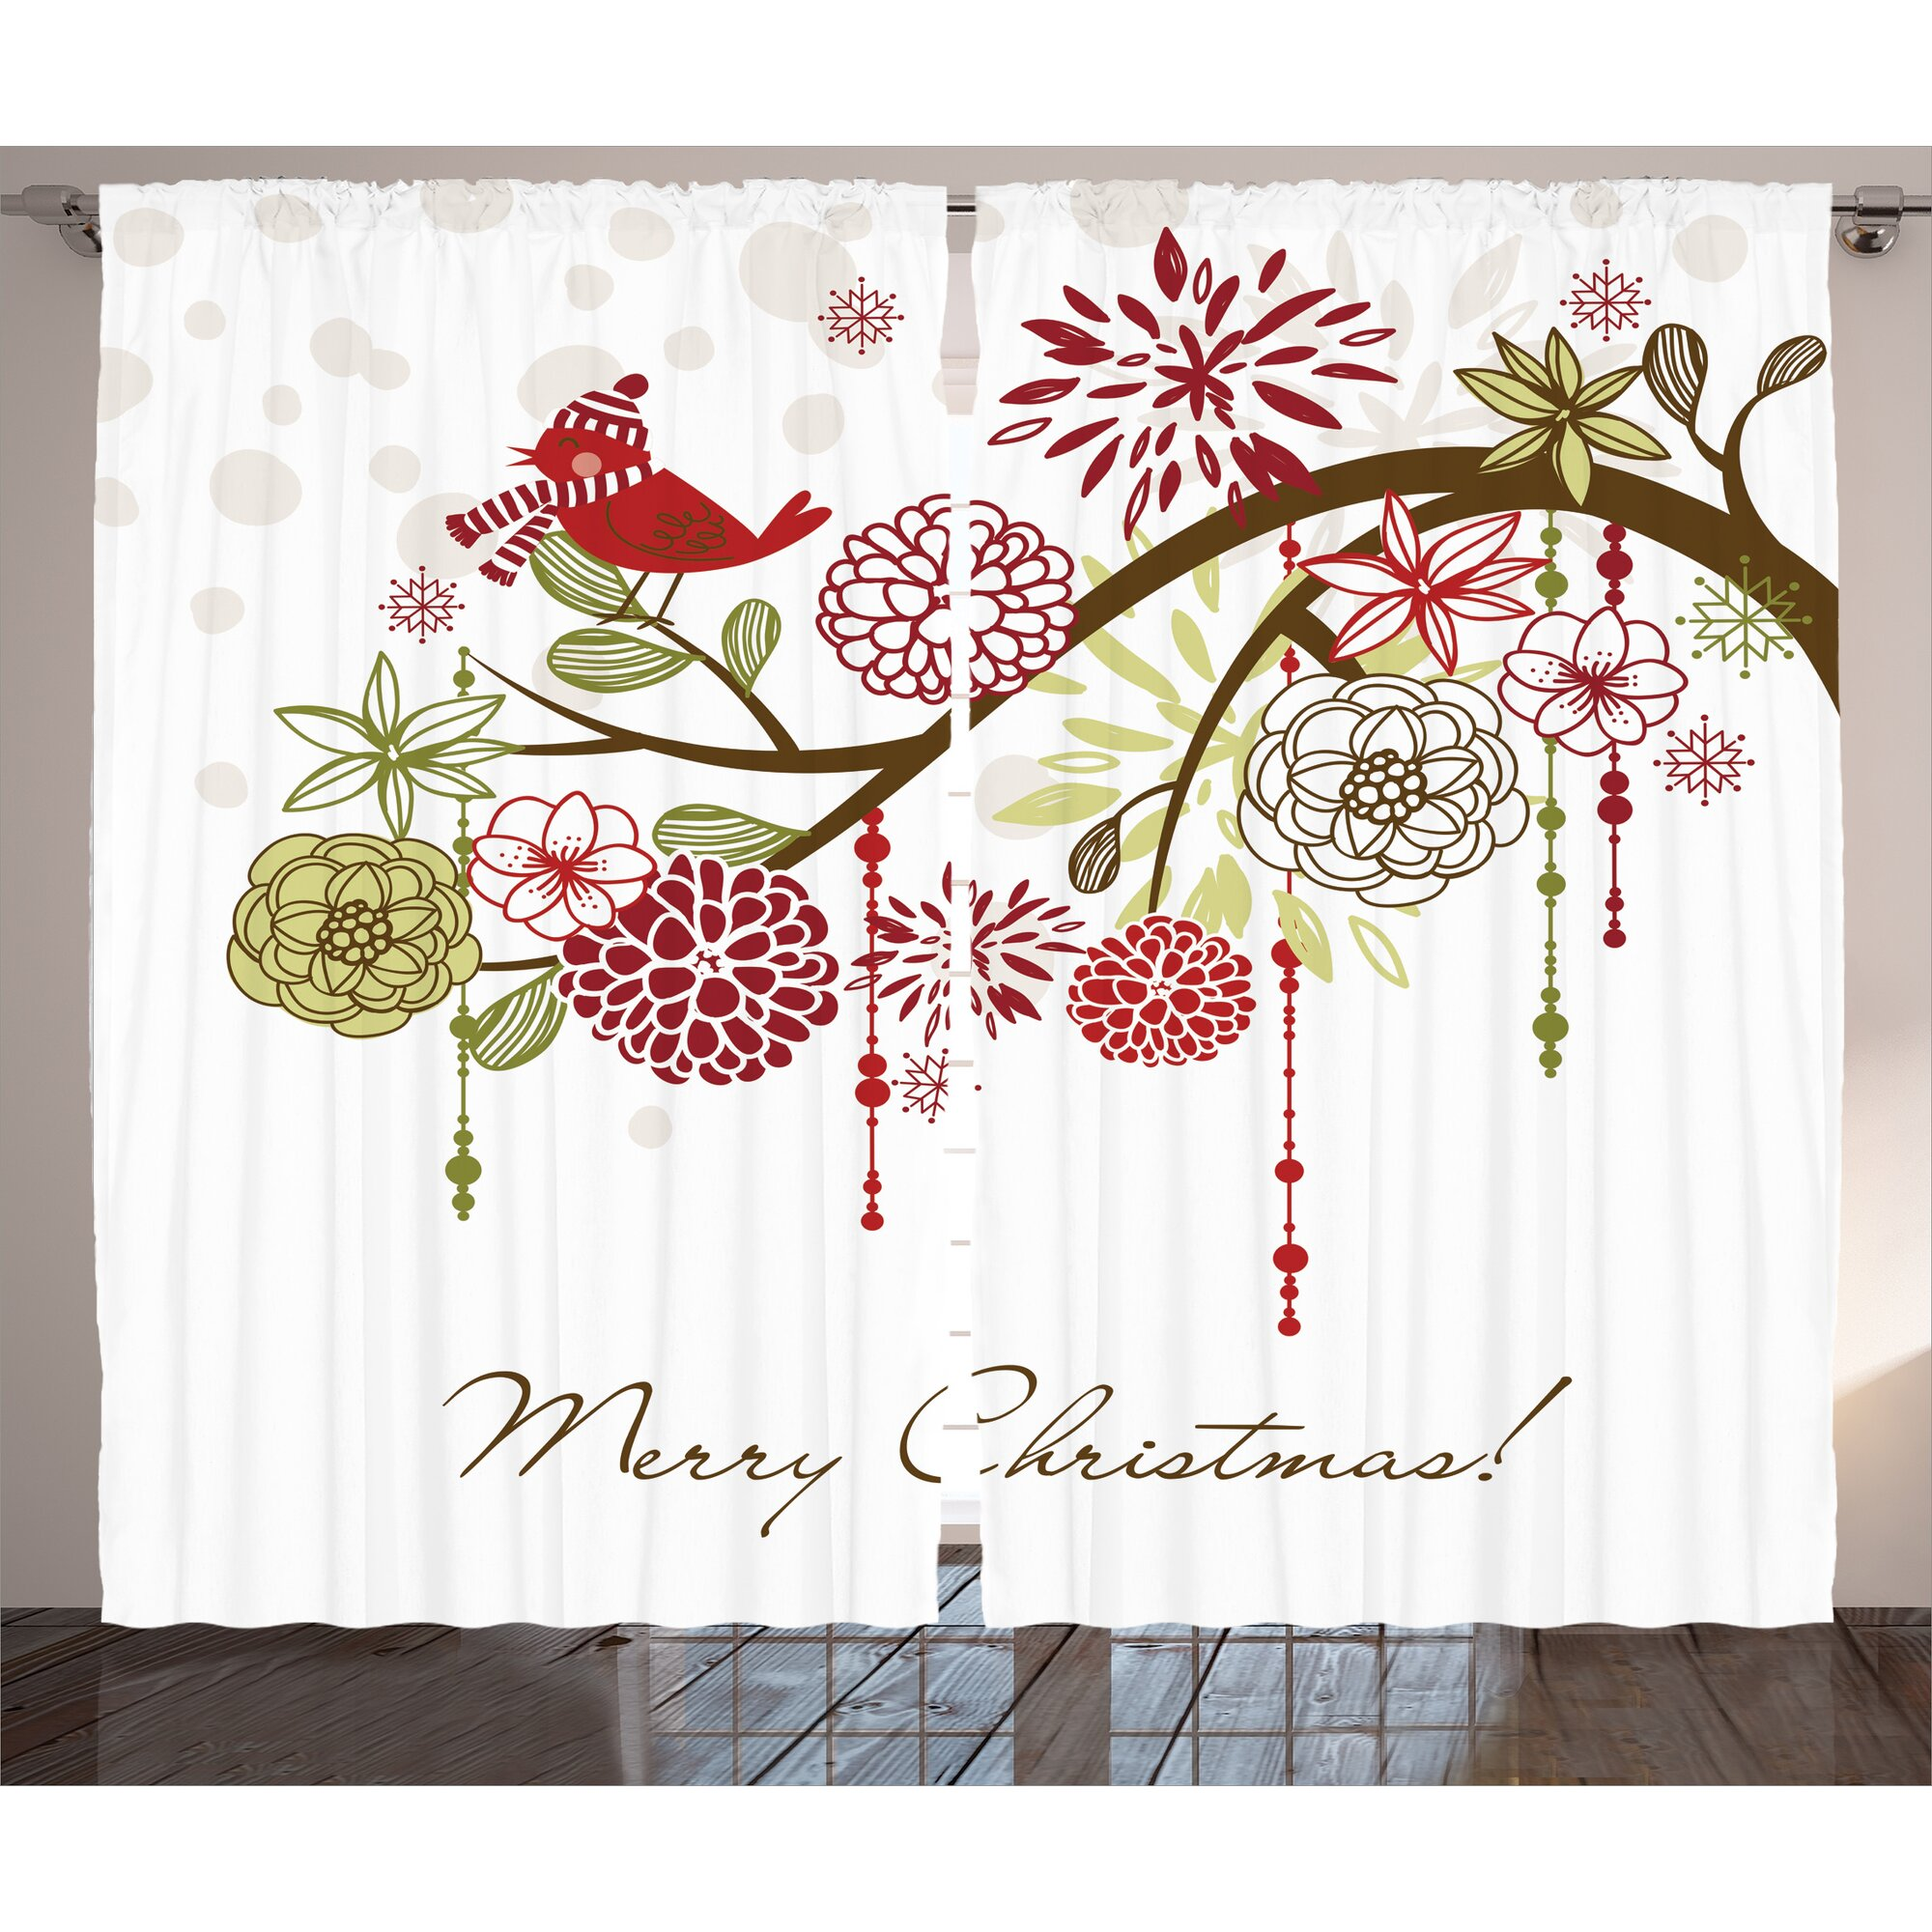 Bird Curtain Panels - Christmas decorations sacred floral winter red bird with hat and scarf on blooming tree graphic print